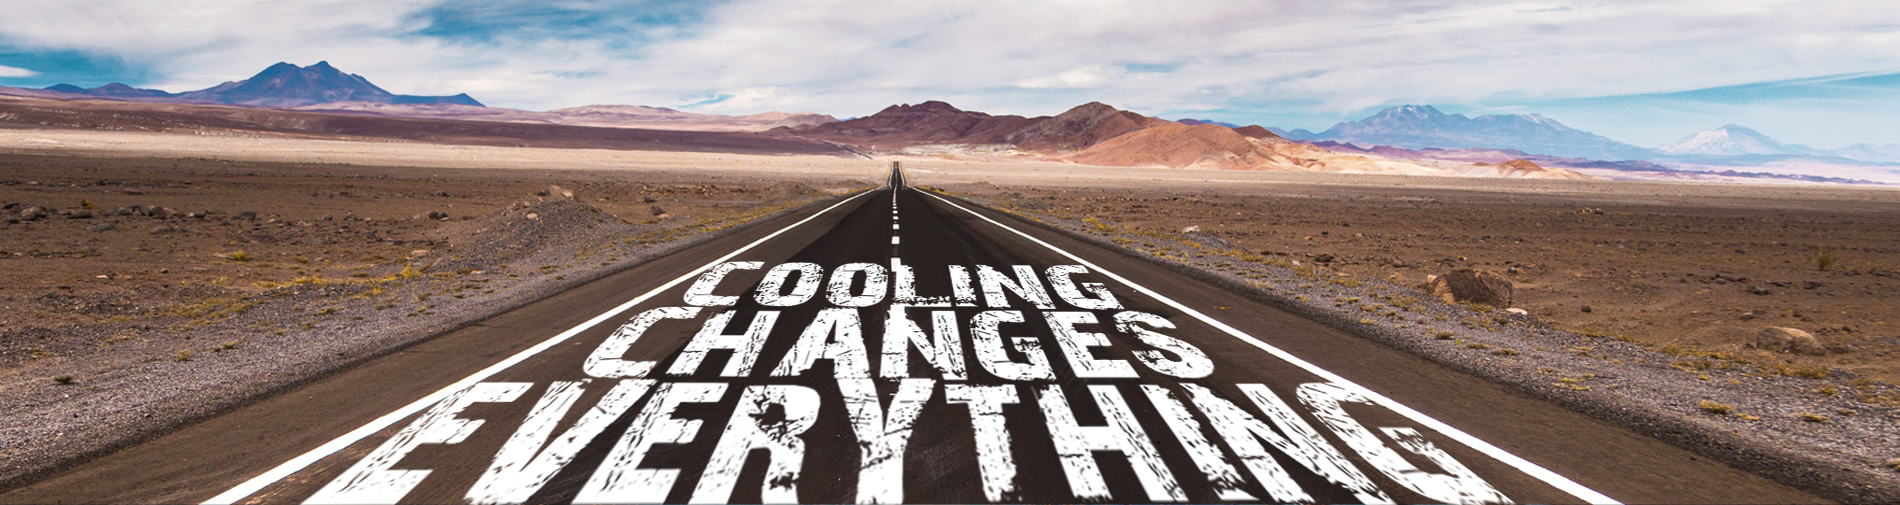 cooling-changes-everything